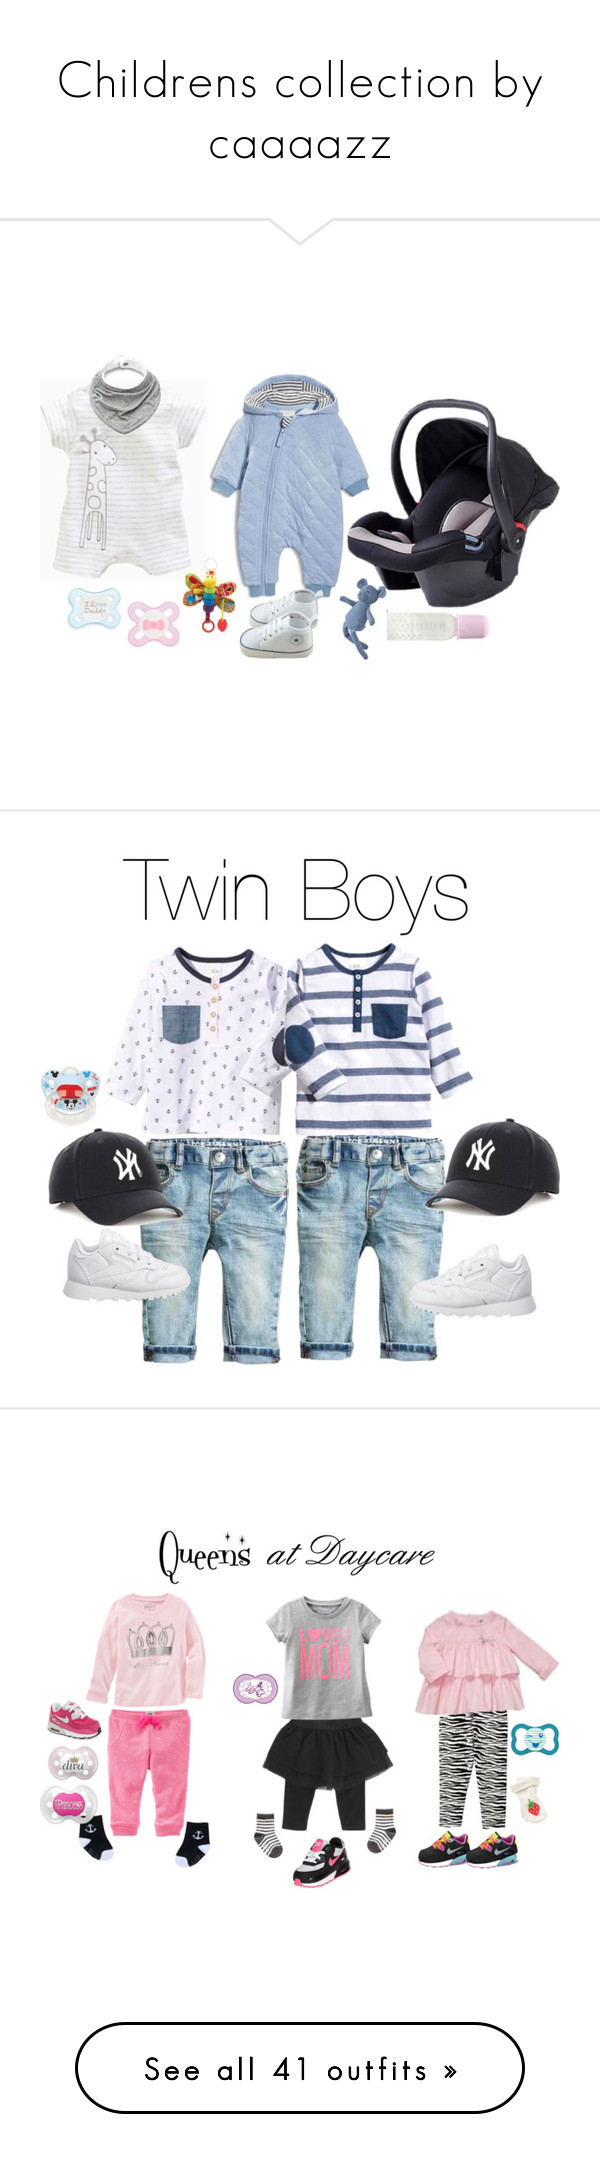 """Childrens collection by caaaazz"" by caaaazz ❤ liked on Polyvore featuring Petit Bateau, Armani Junior, Reebok, Disney, NIKE, Carter's, Gymboree, BabyGirl, queens and BabyGirlfashion"